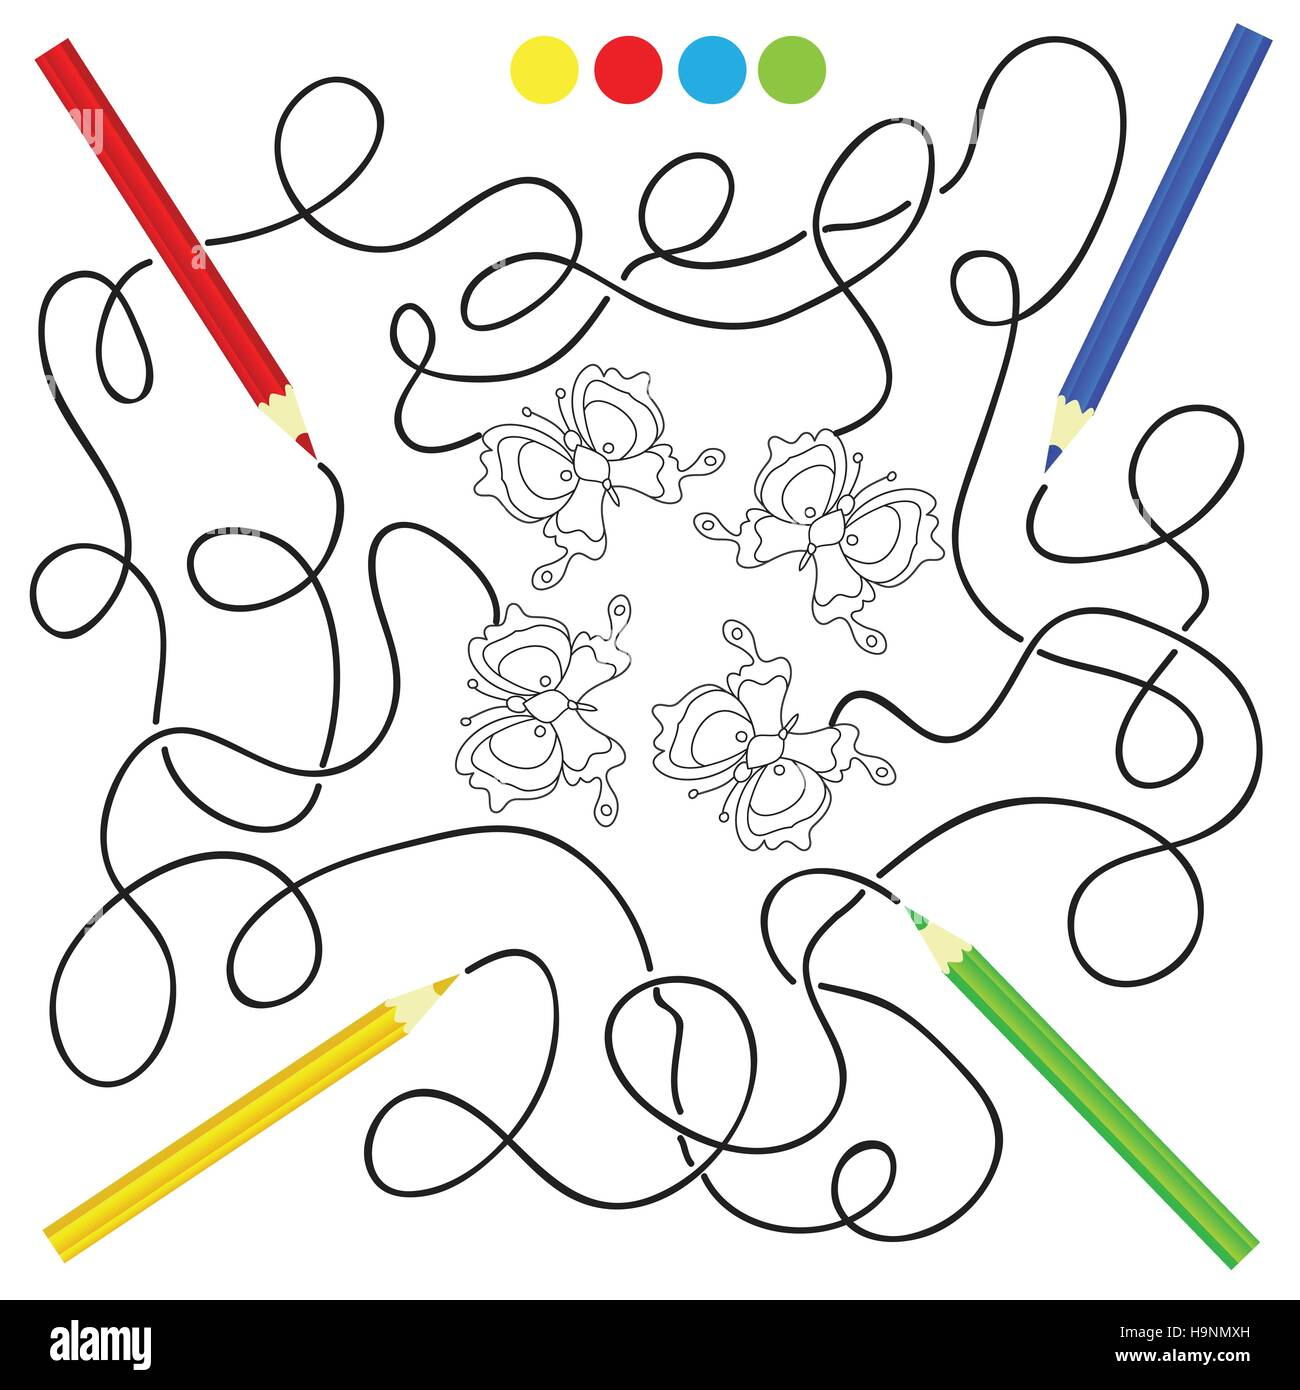 maze game and coloring activity page for kids: Help the pencils to ...